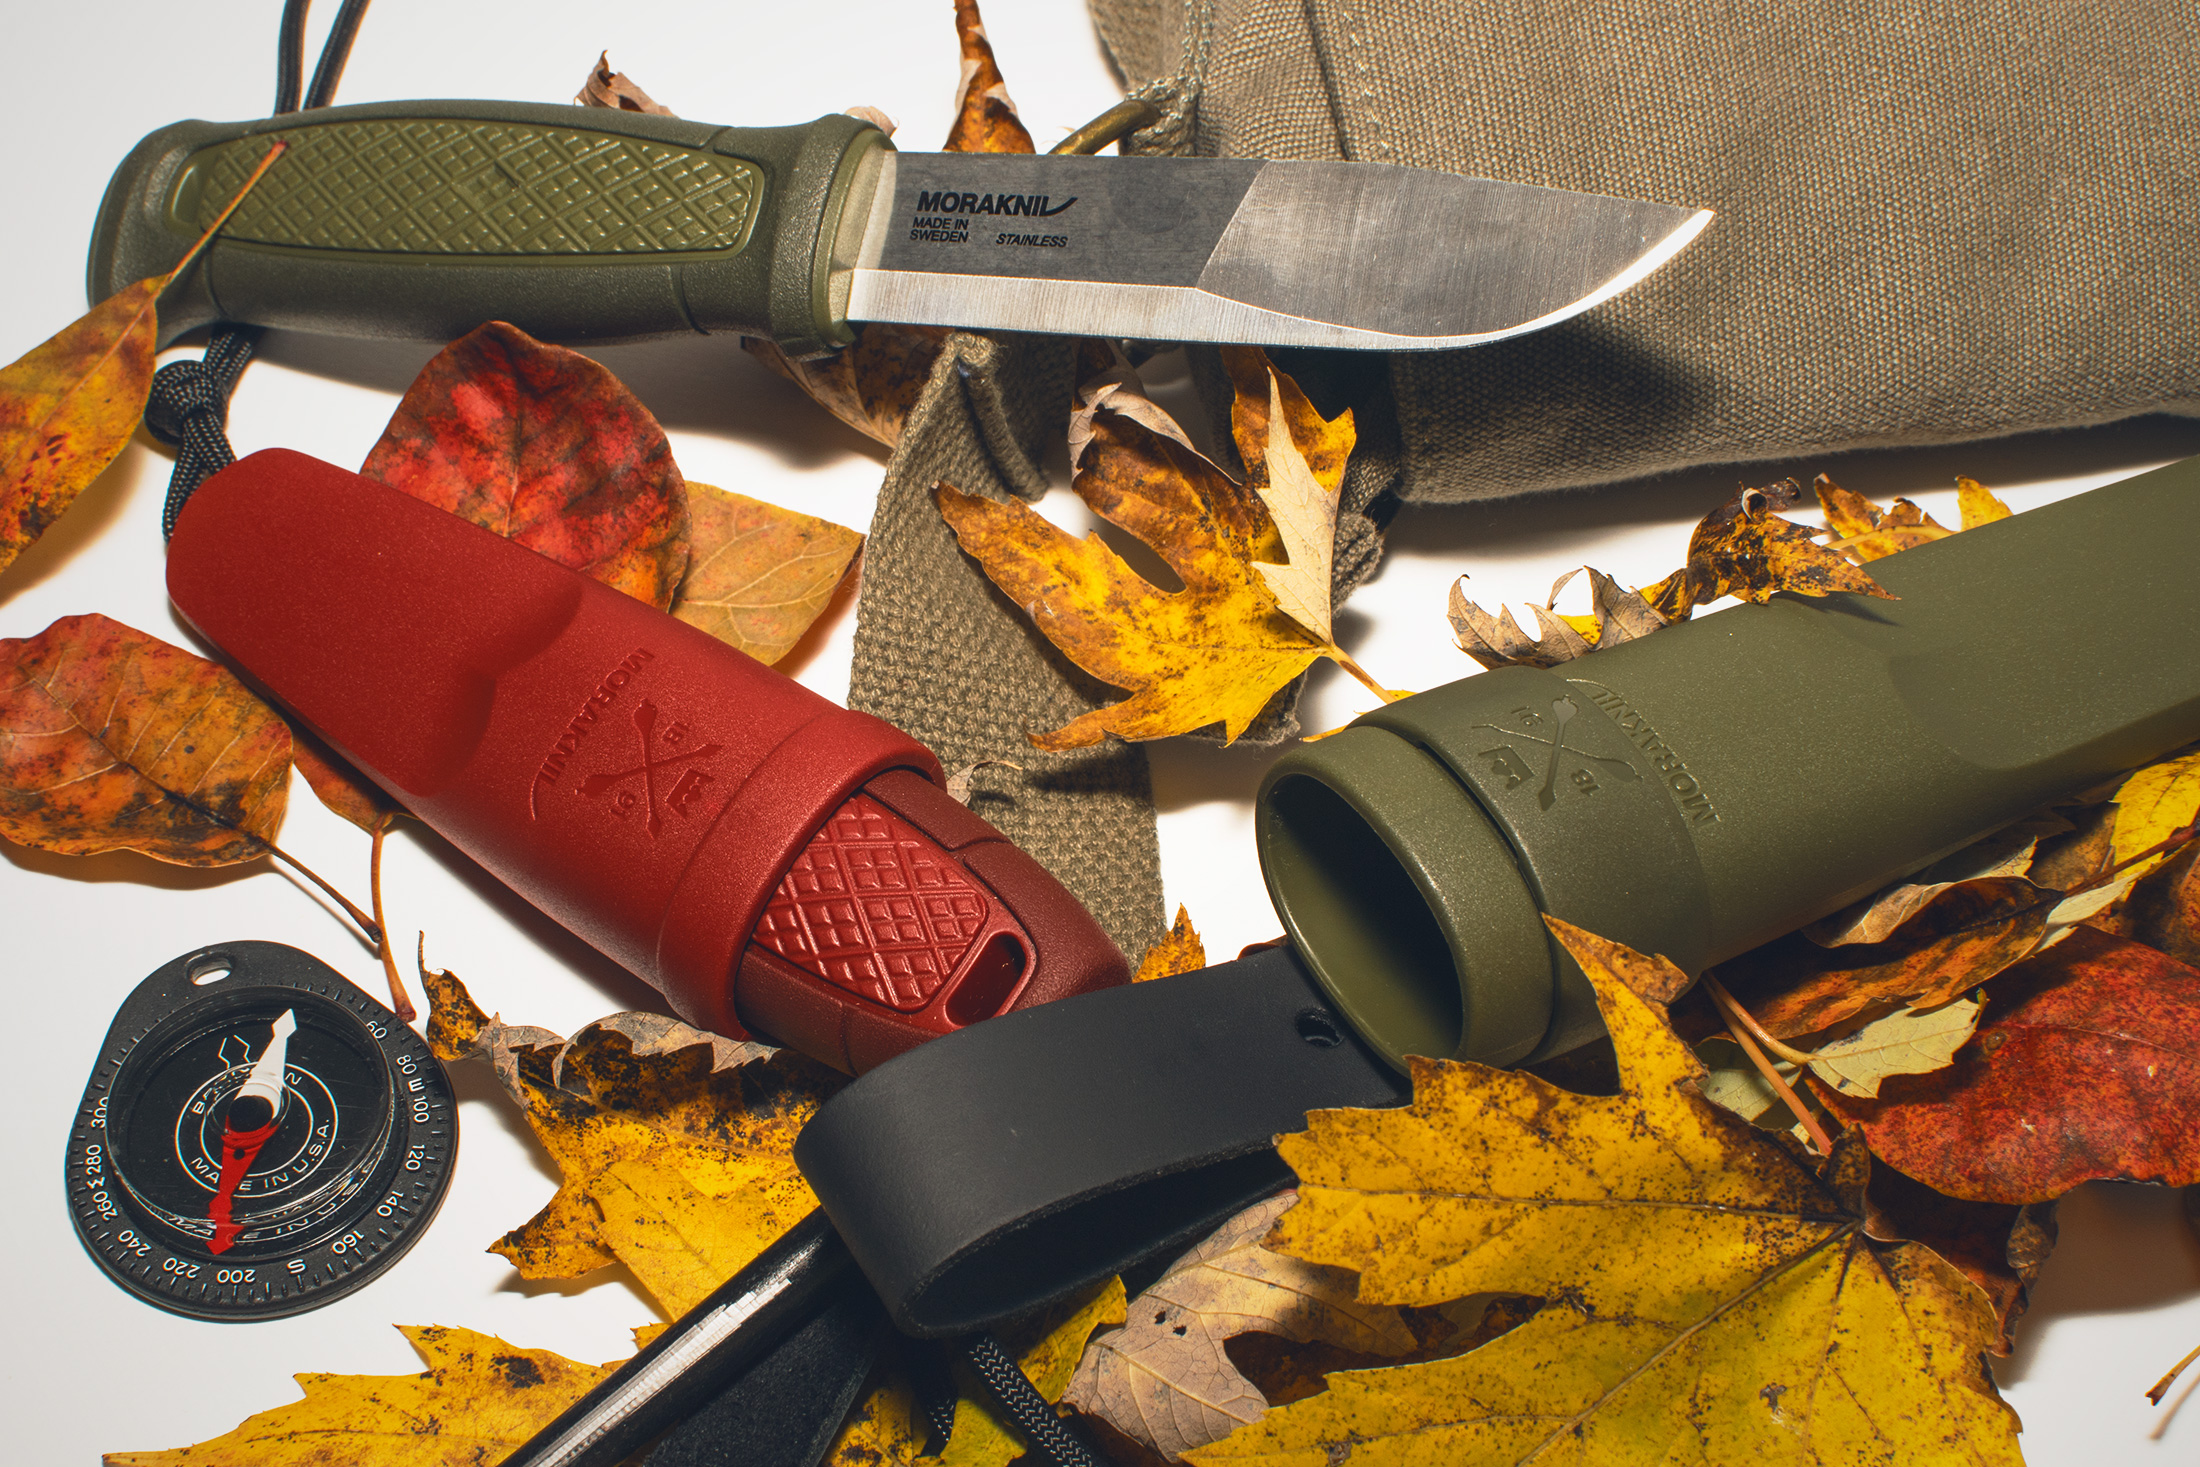 Morakniv Kansbol Review